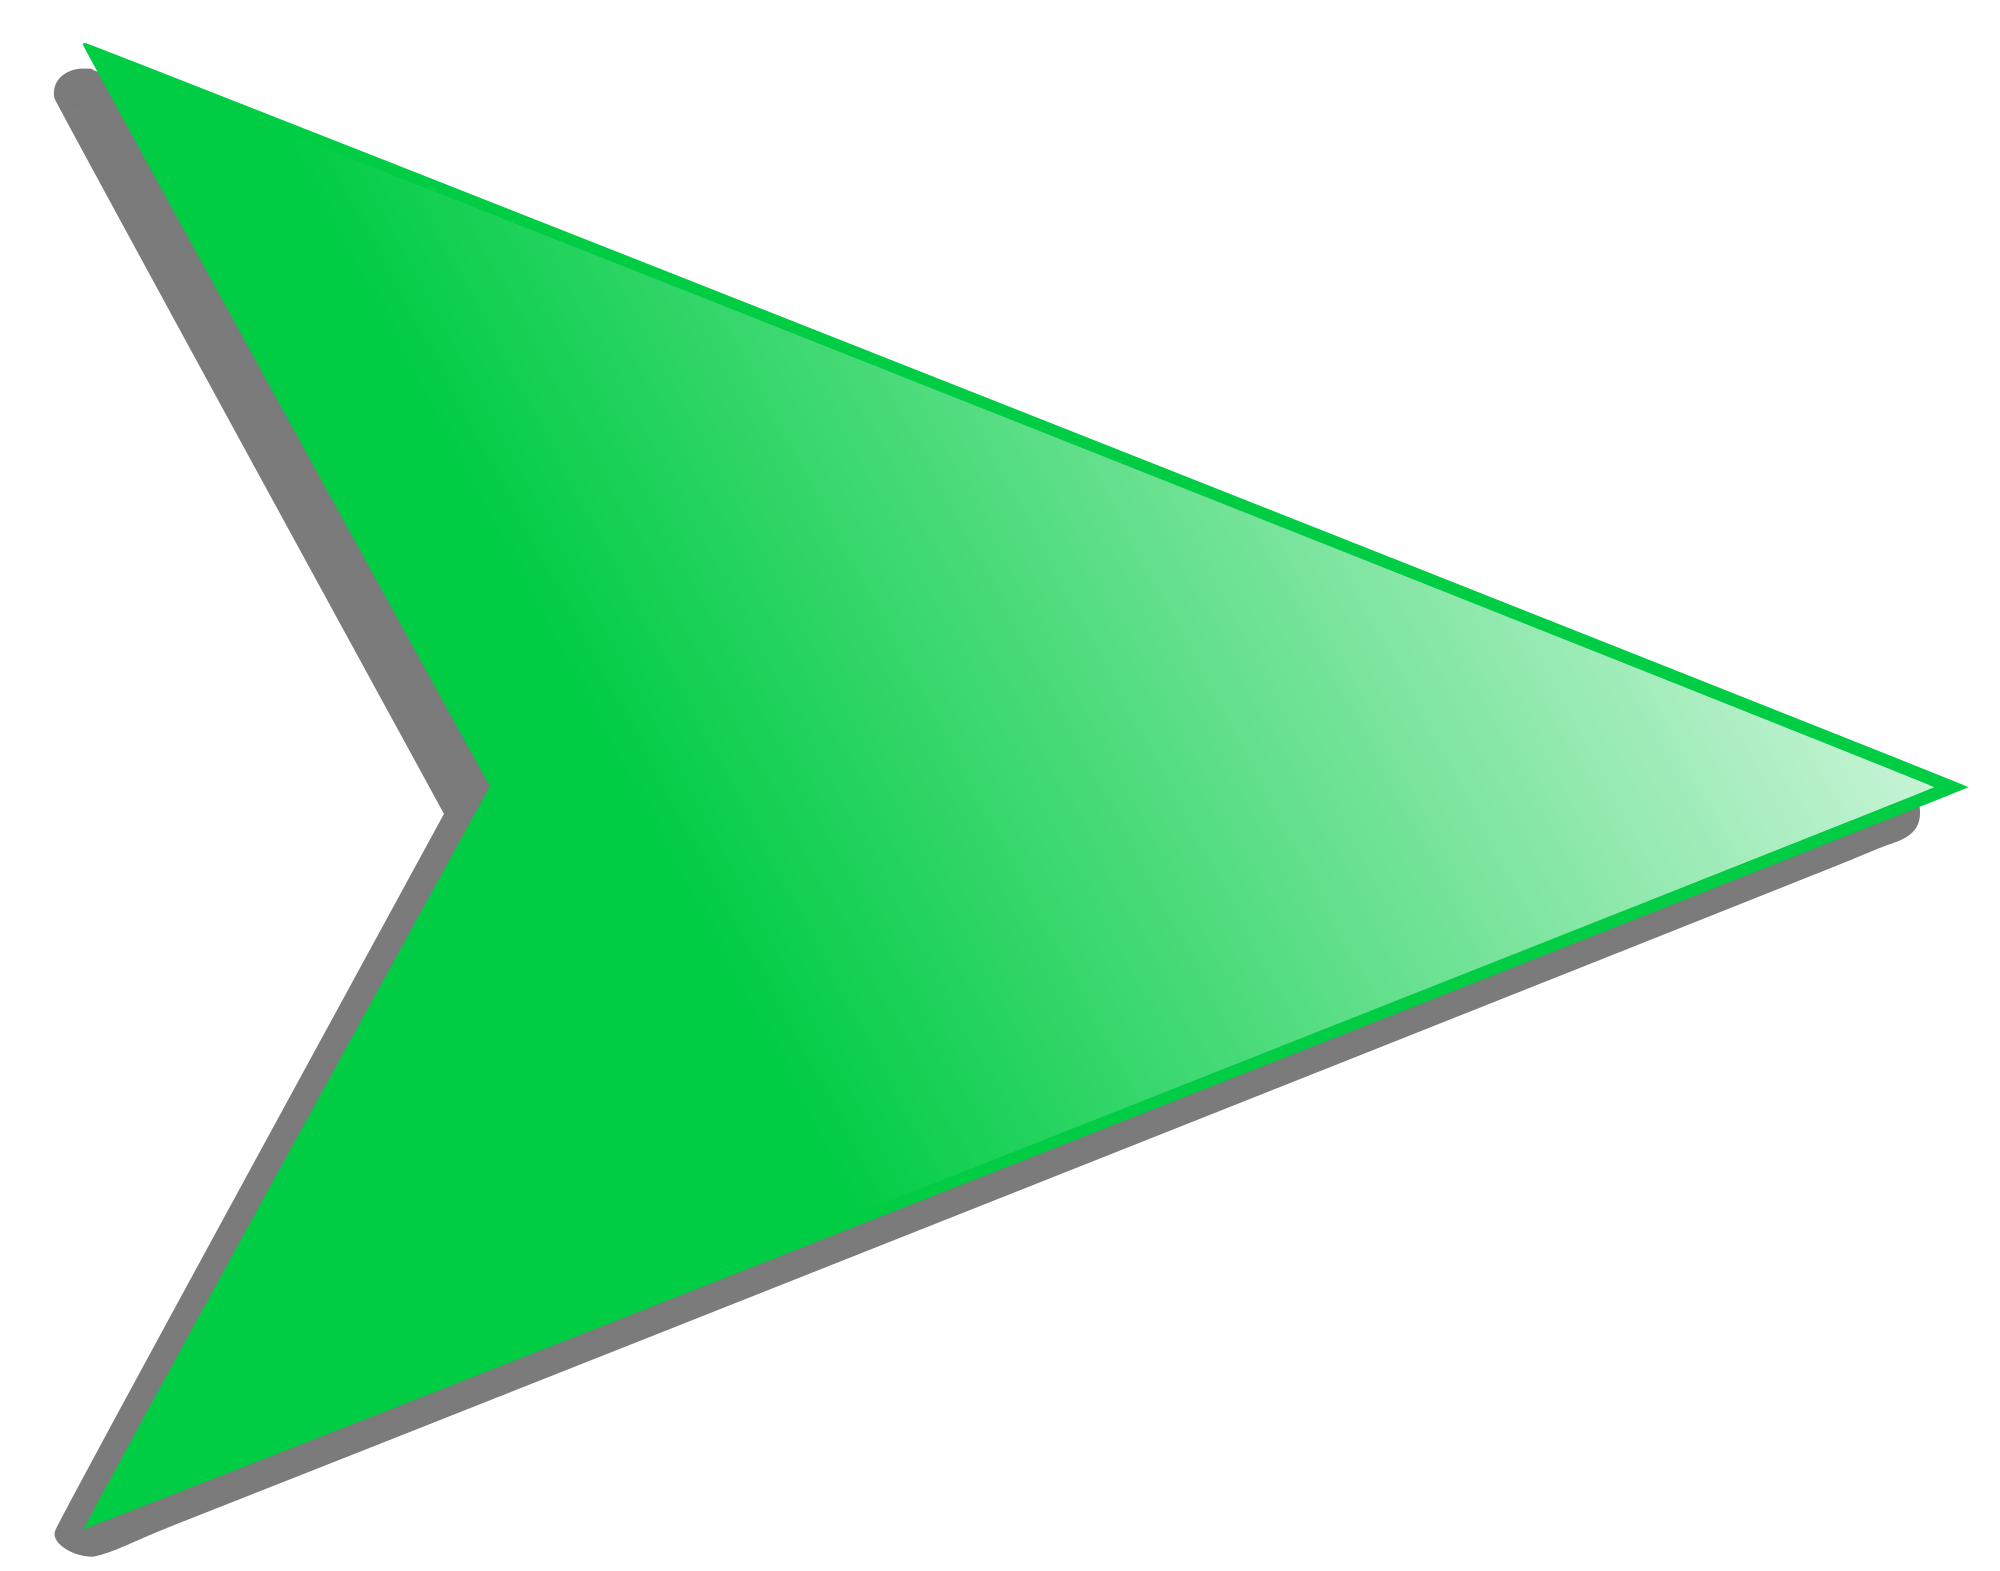 Arrow Point Png 2 Png Image